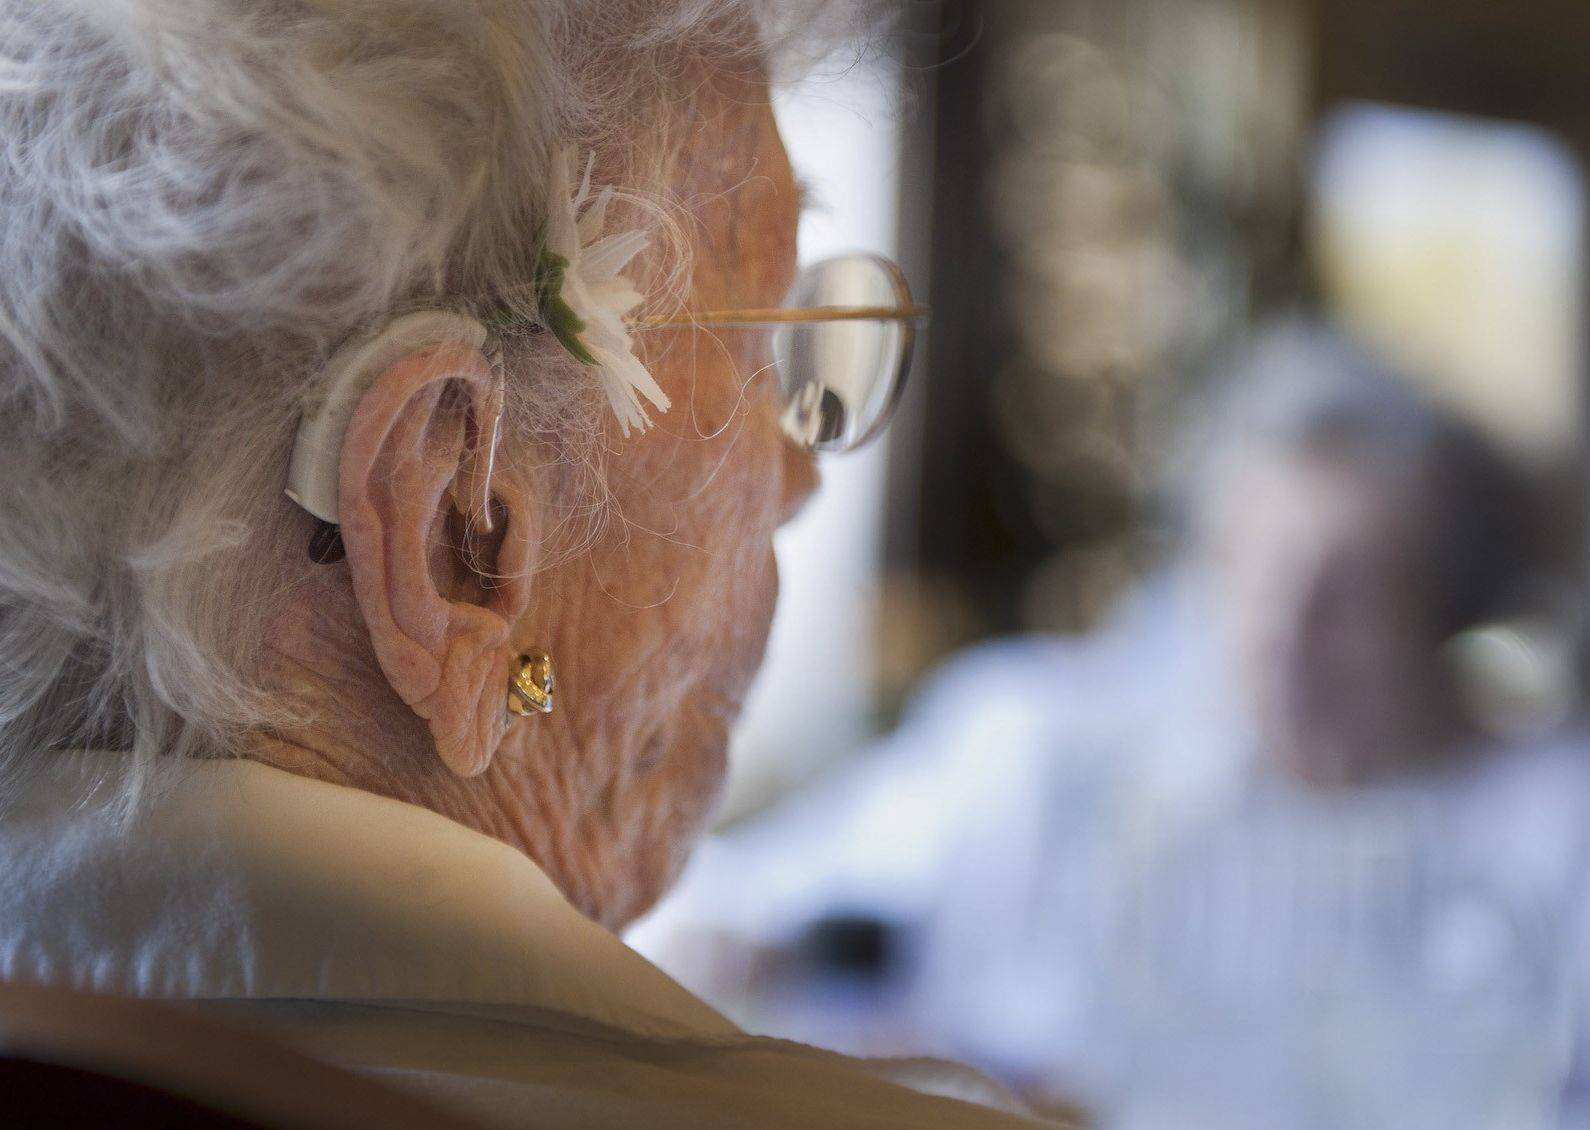 Seniors' hearing loss a hidden, correctable problem